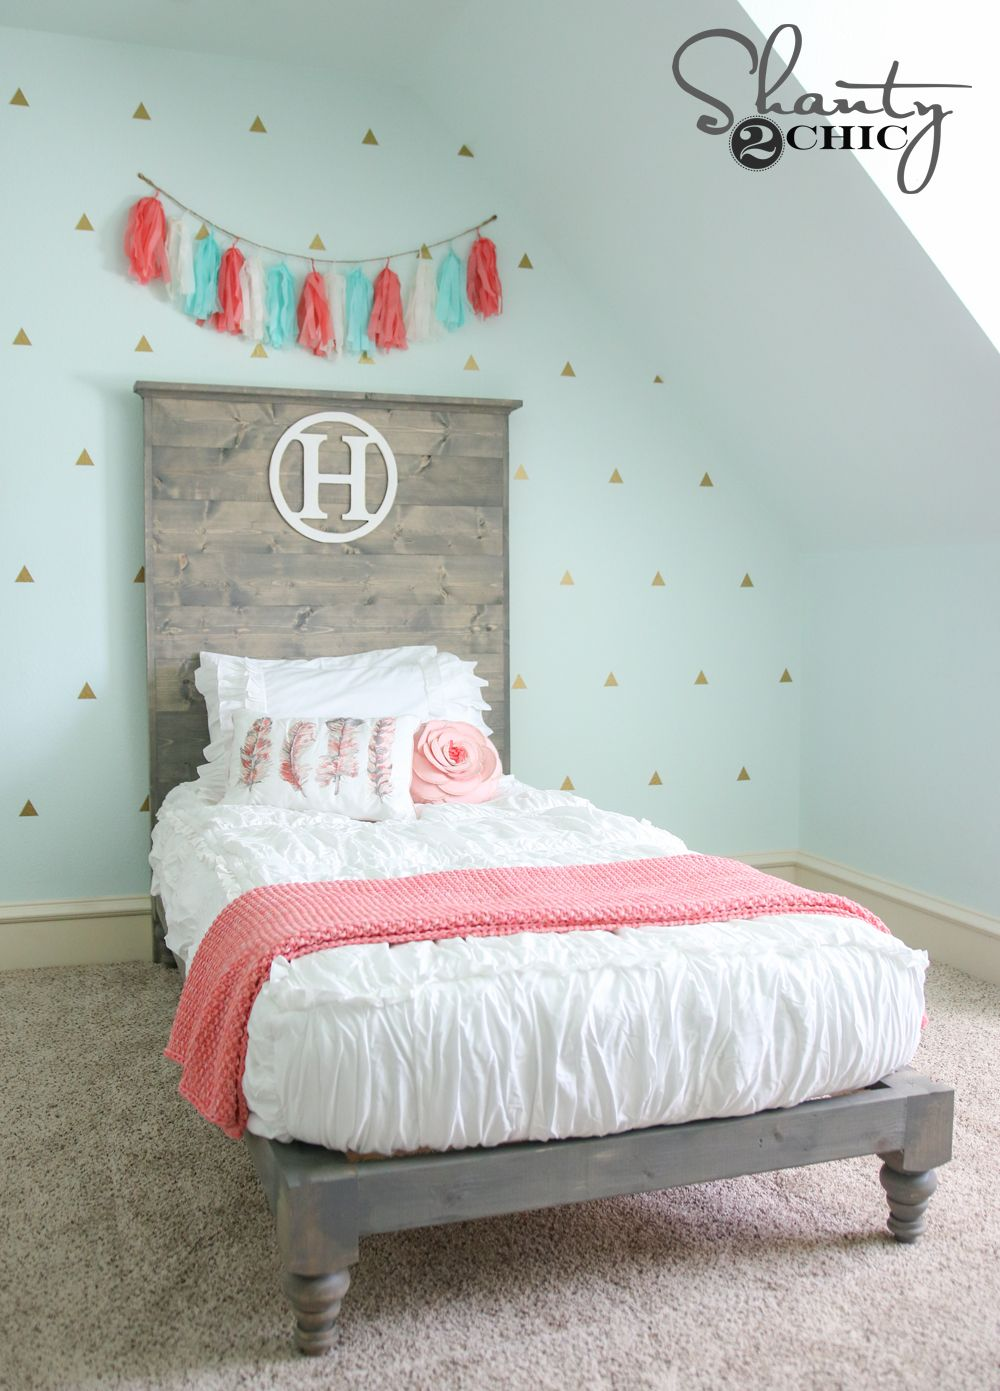 Diy Twin Platform Bed And Headboard Shanty 2 Chic Diy Twin Bed Twin Platform Bed Girls Twin Bed